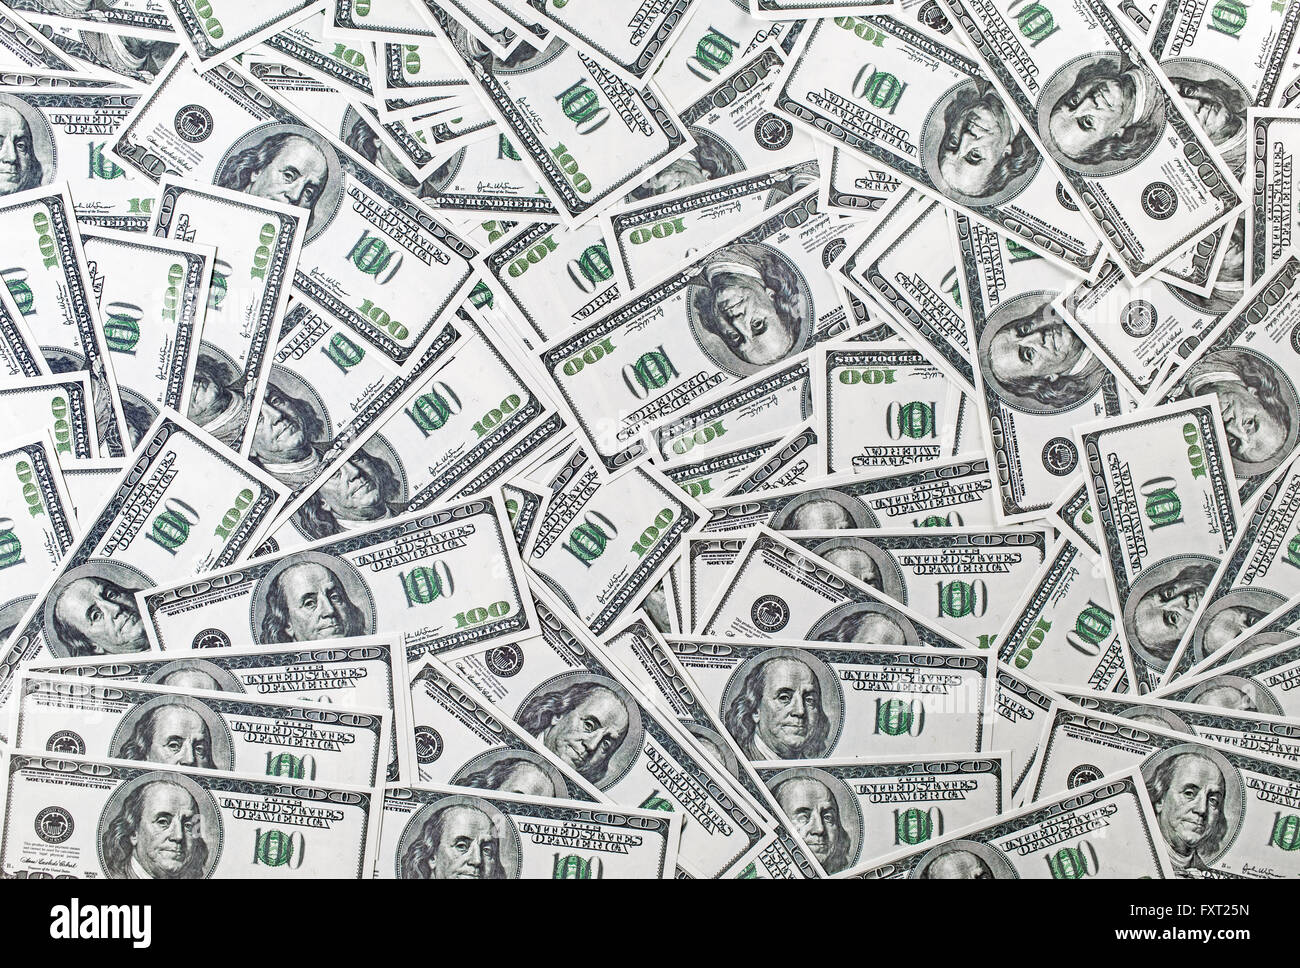 Background from a variety of one hundred dollar bills. Many dollars. Money background. Fake money. - Stock Image